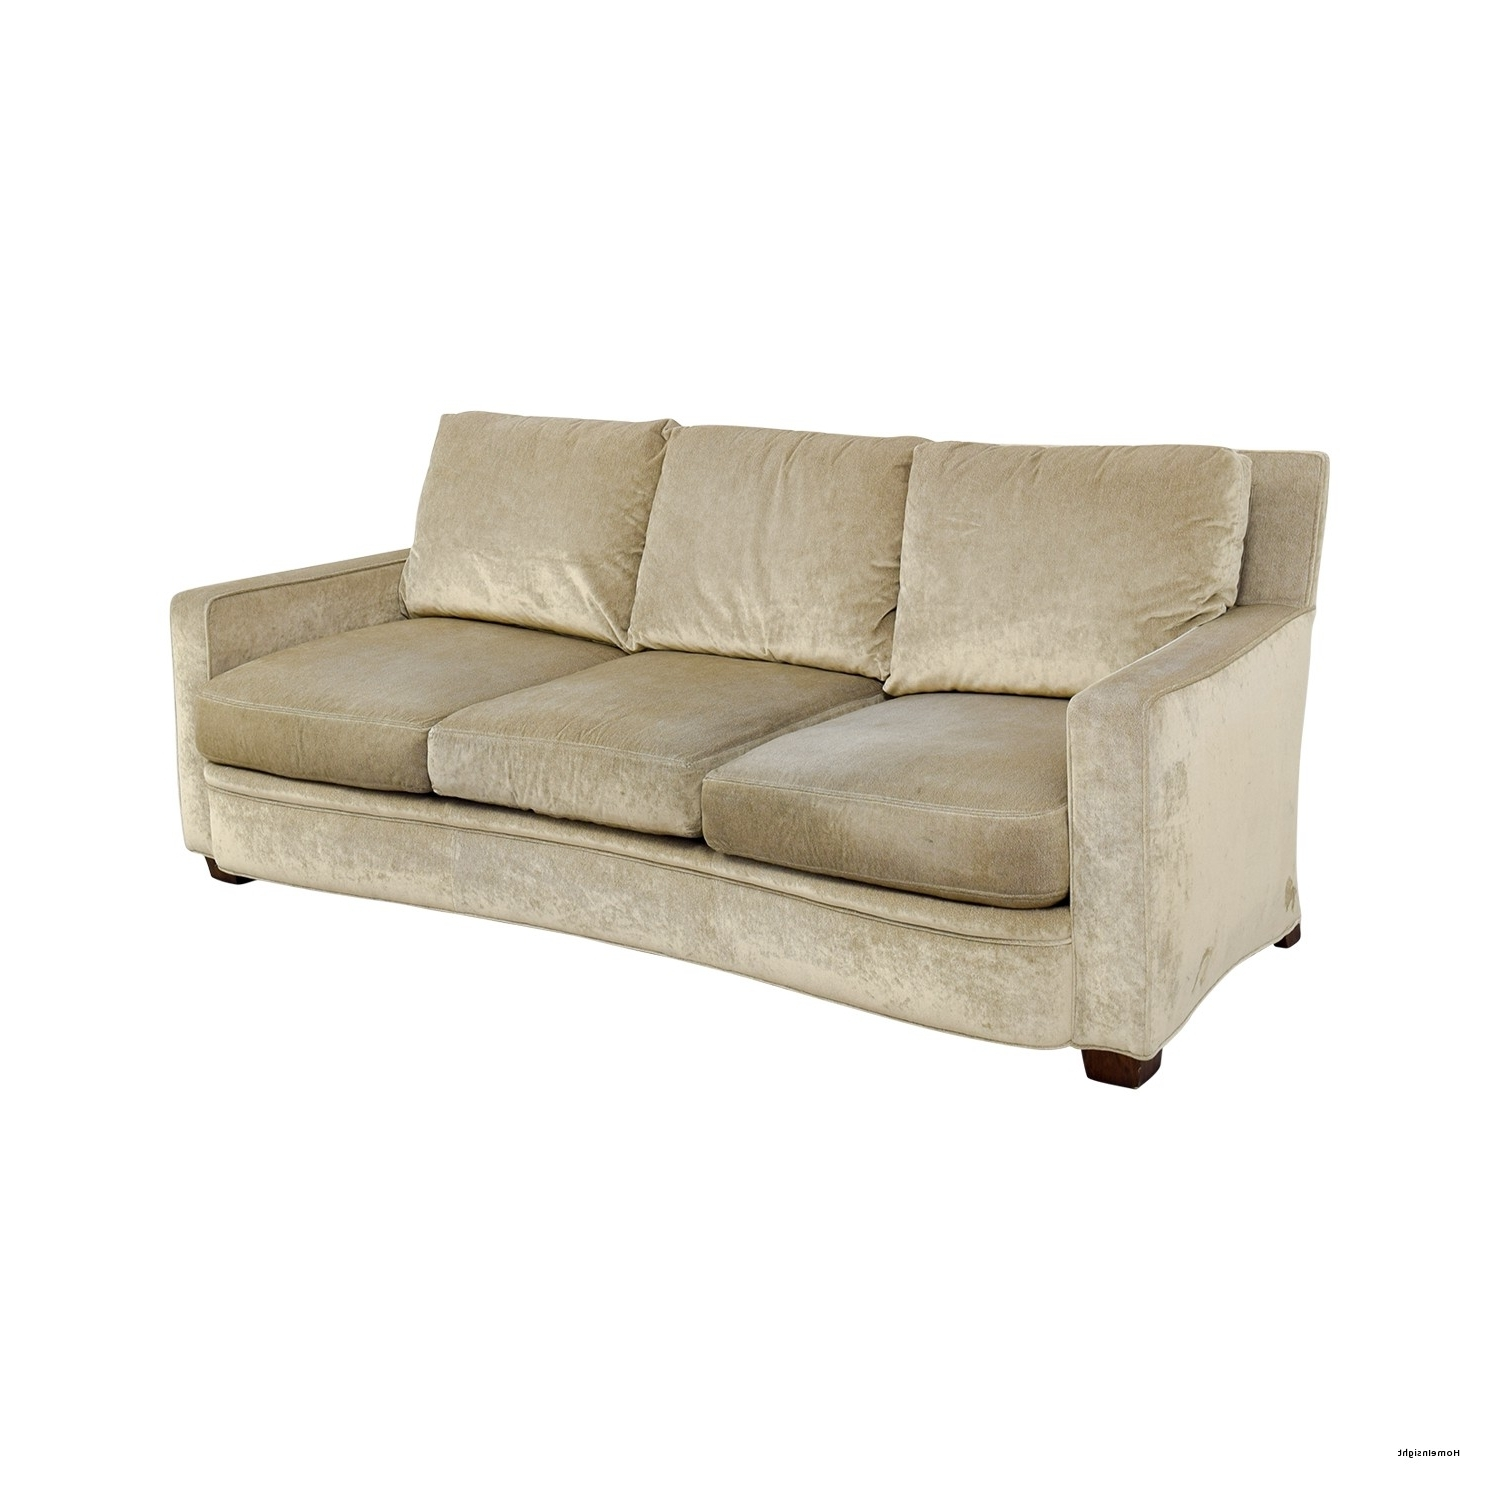 Trendy Awesome Affordable Tufted Sofa (View 20 of 20)